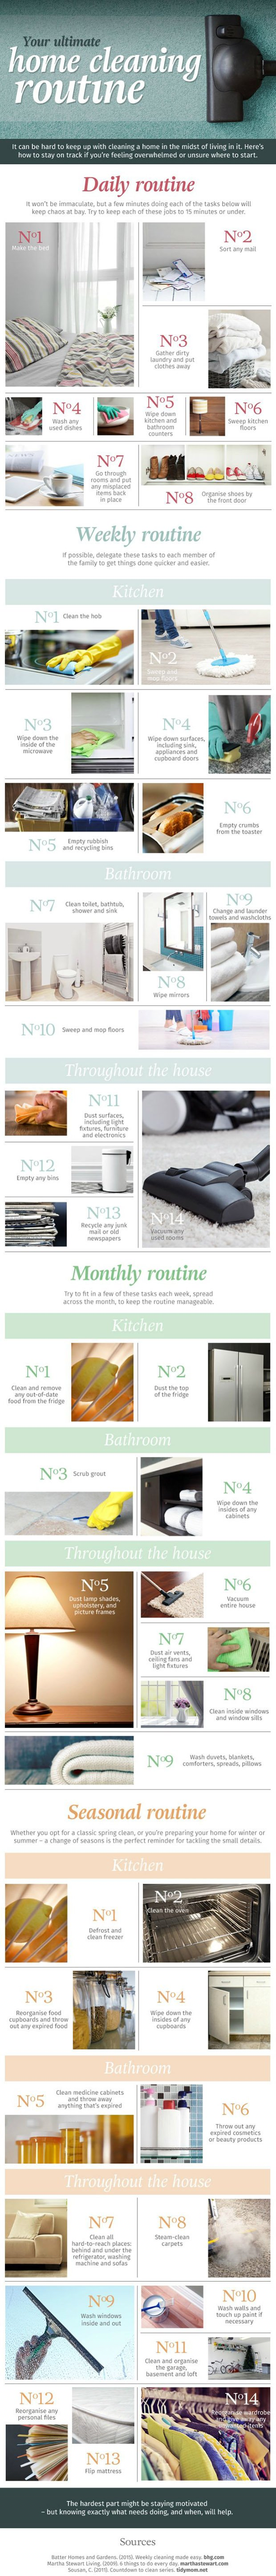 70 Ultimate home cleaning routine